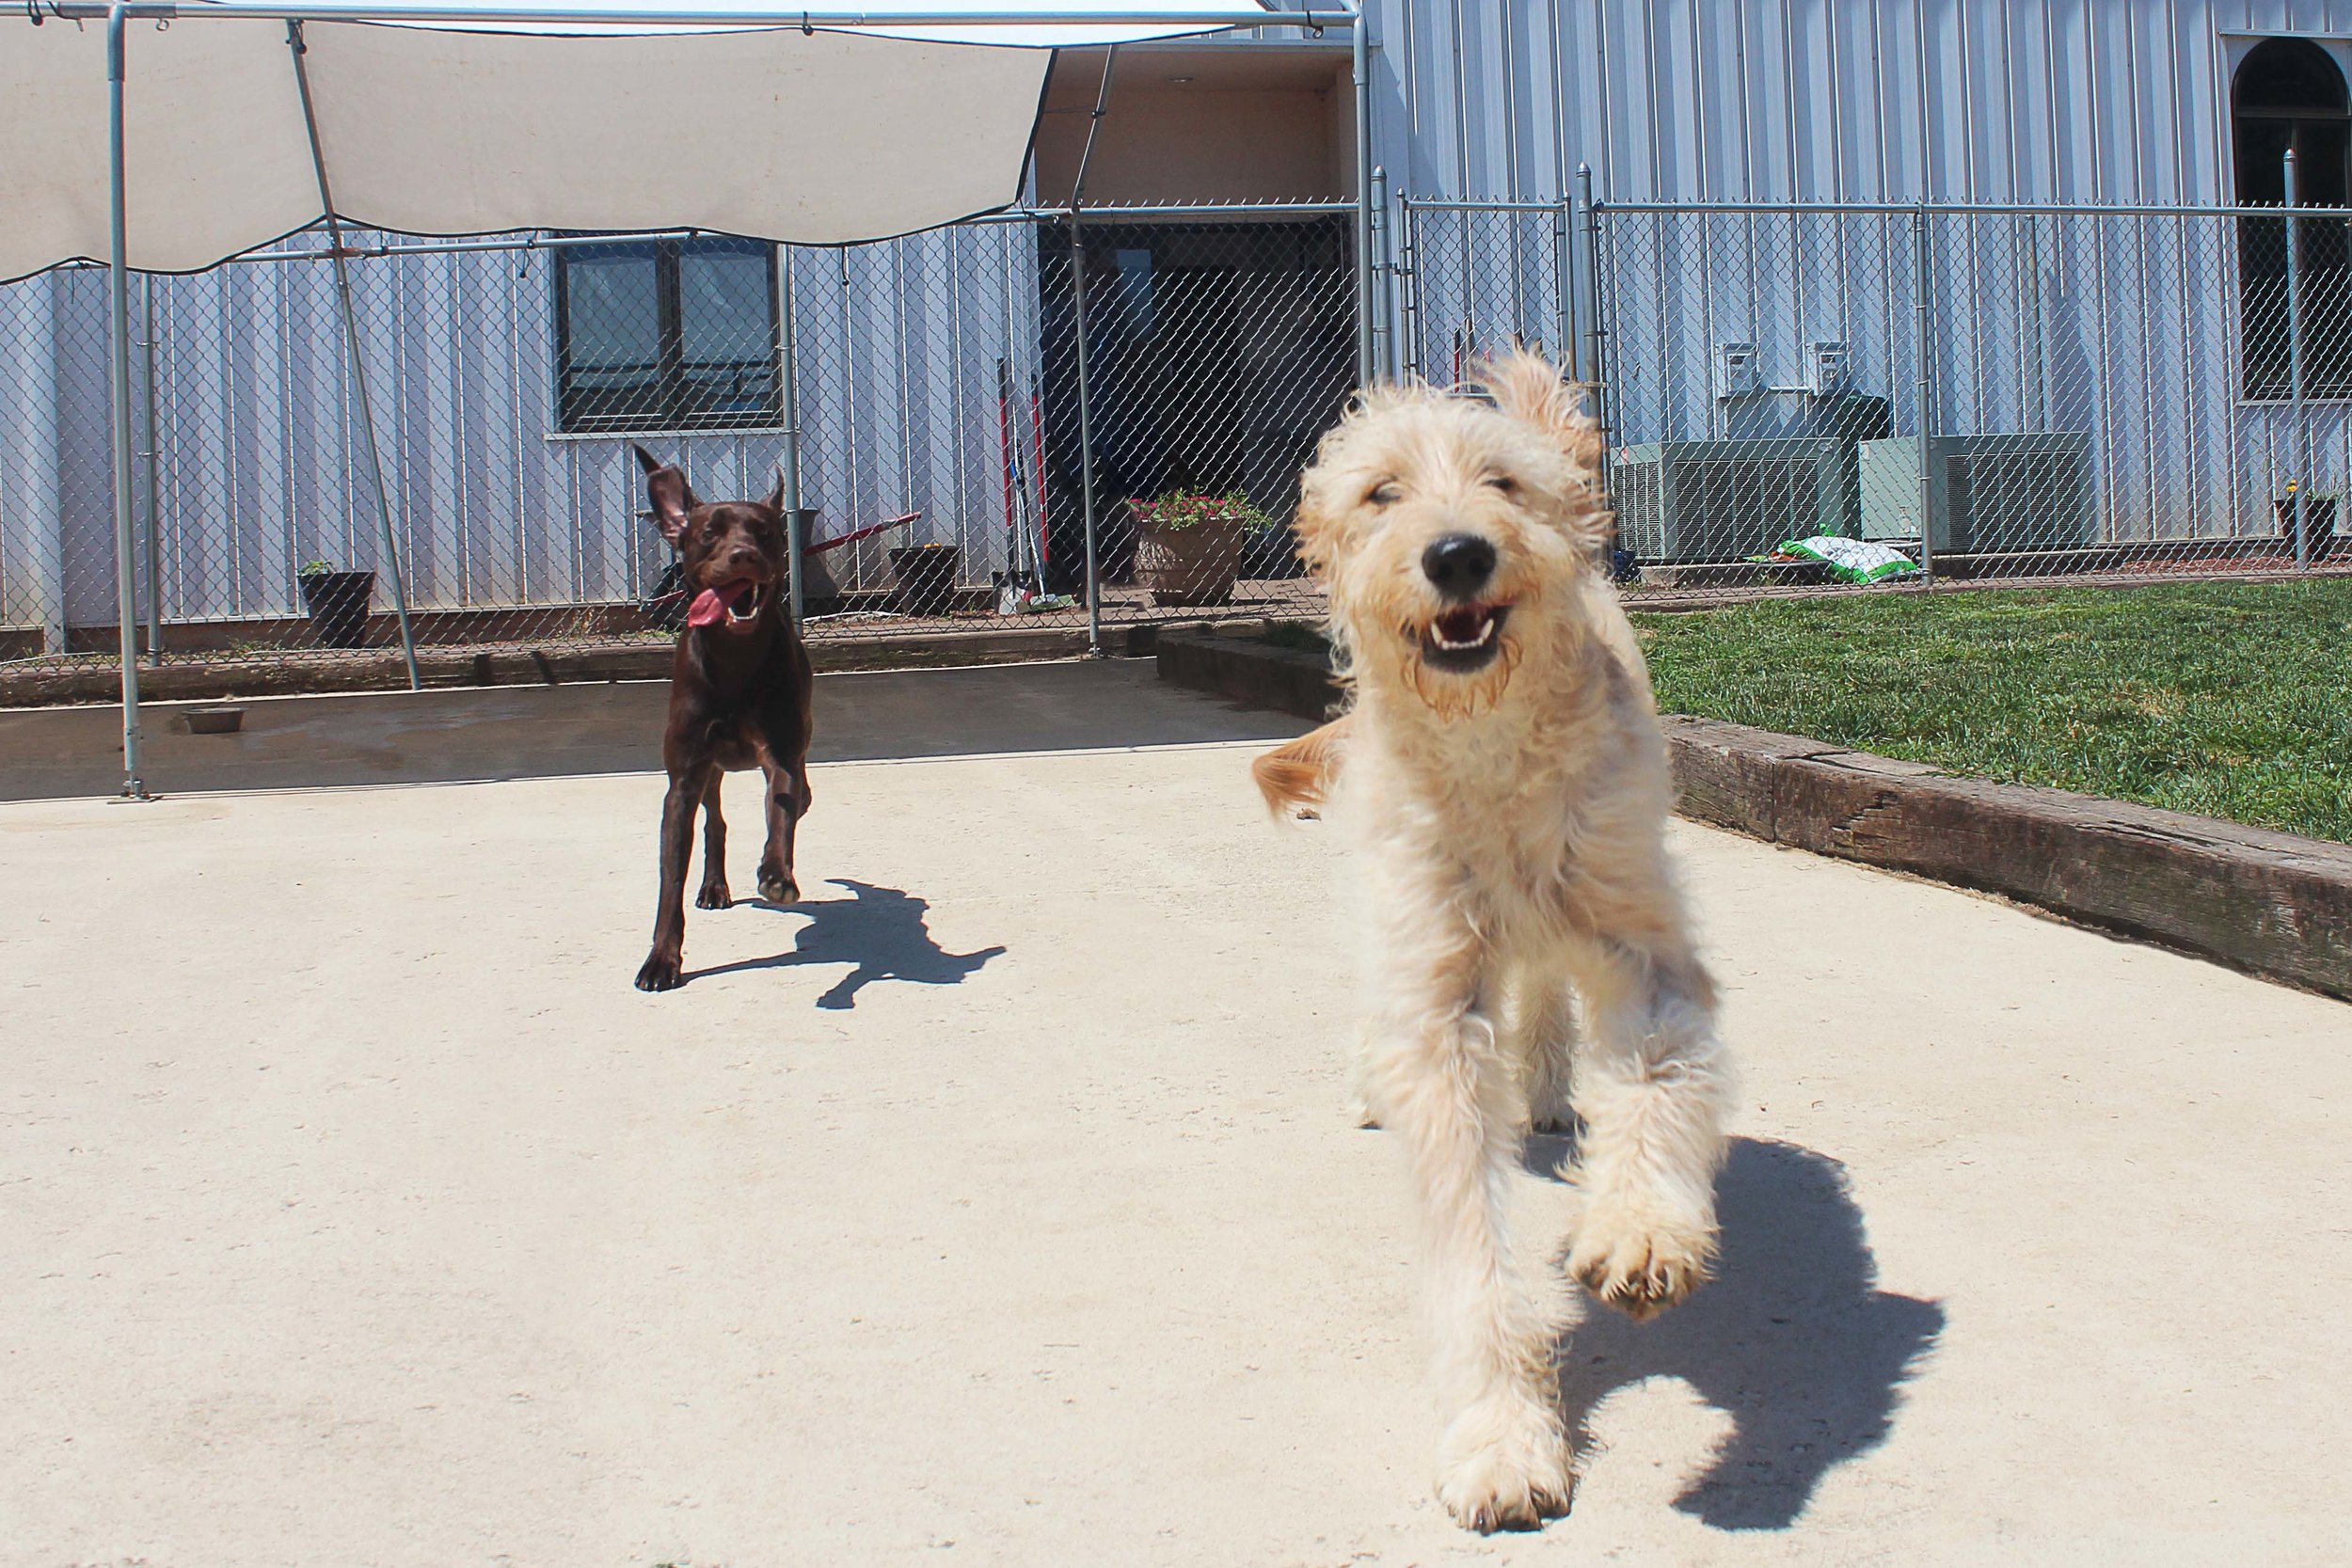 Not only is Charlie energetic and social he also has a good amount of goofiness that he shows on a regular basis. Whether he's running toward you, away from you, or in any direction in general, he always makes an effort to look like he's trying to make sure you know how happy he is.